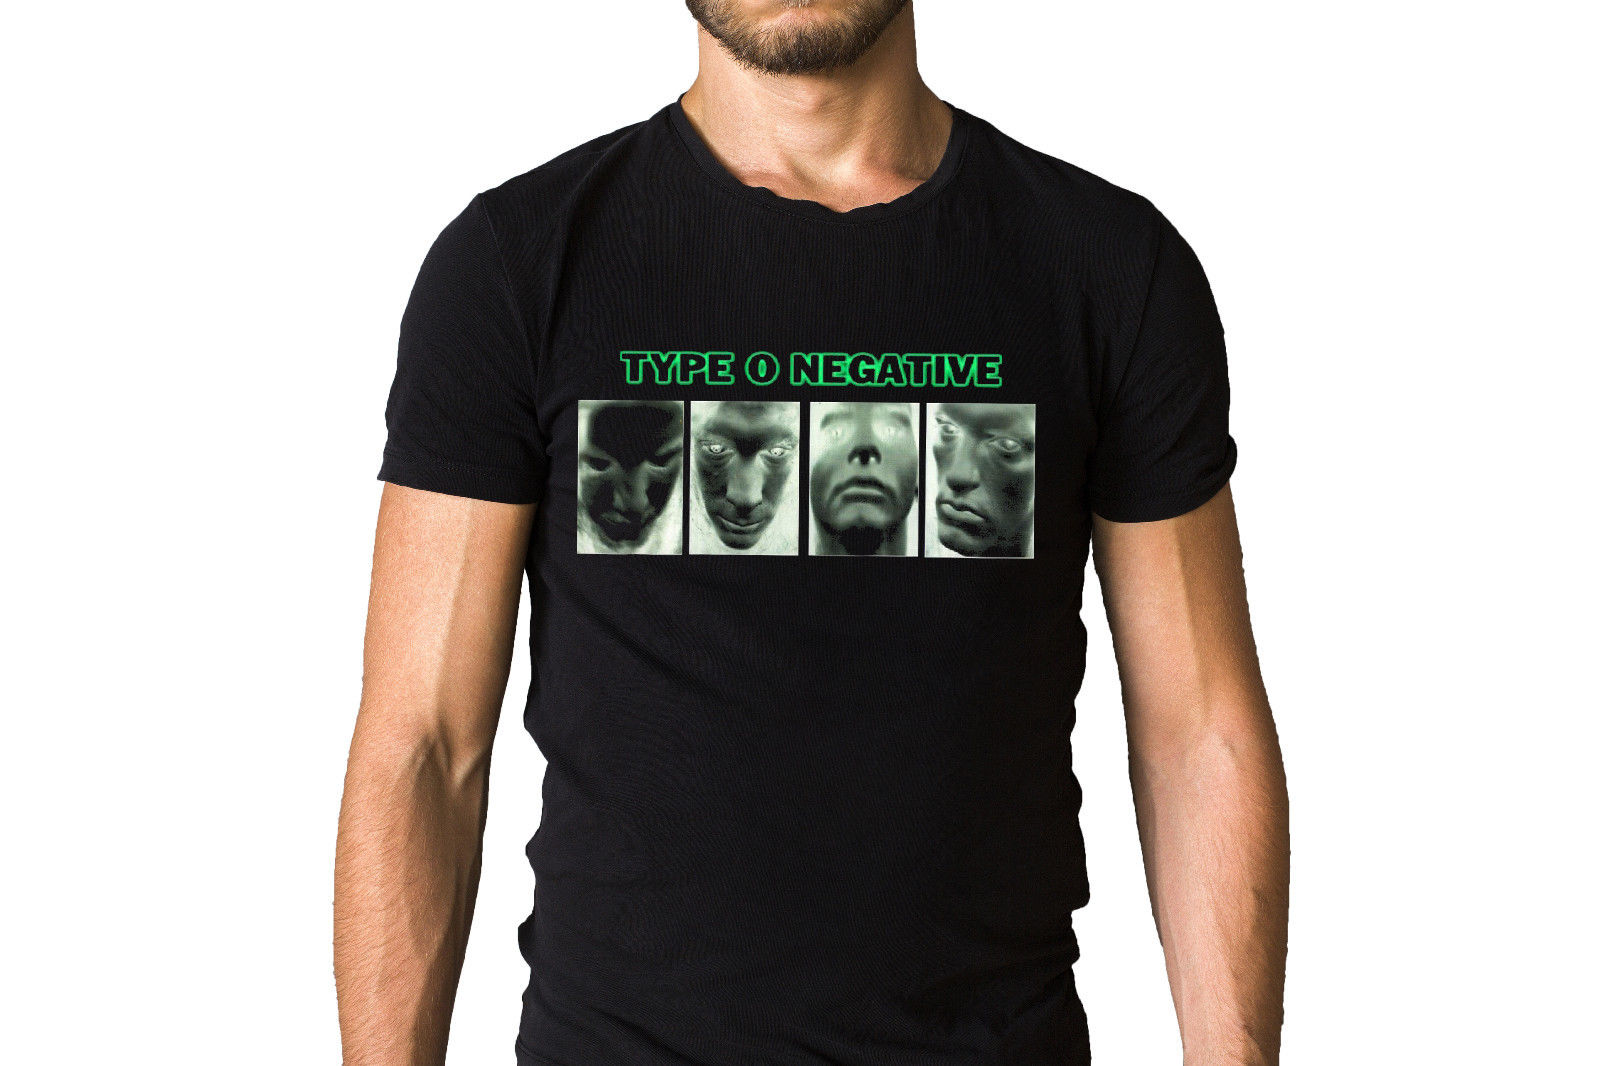 Type O Negative Band Group Black T-Shirt Round Neck Best Selling Male Natural Cotton T Shirt TOP TEE Funny Tees Men Short